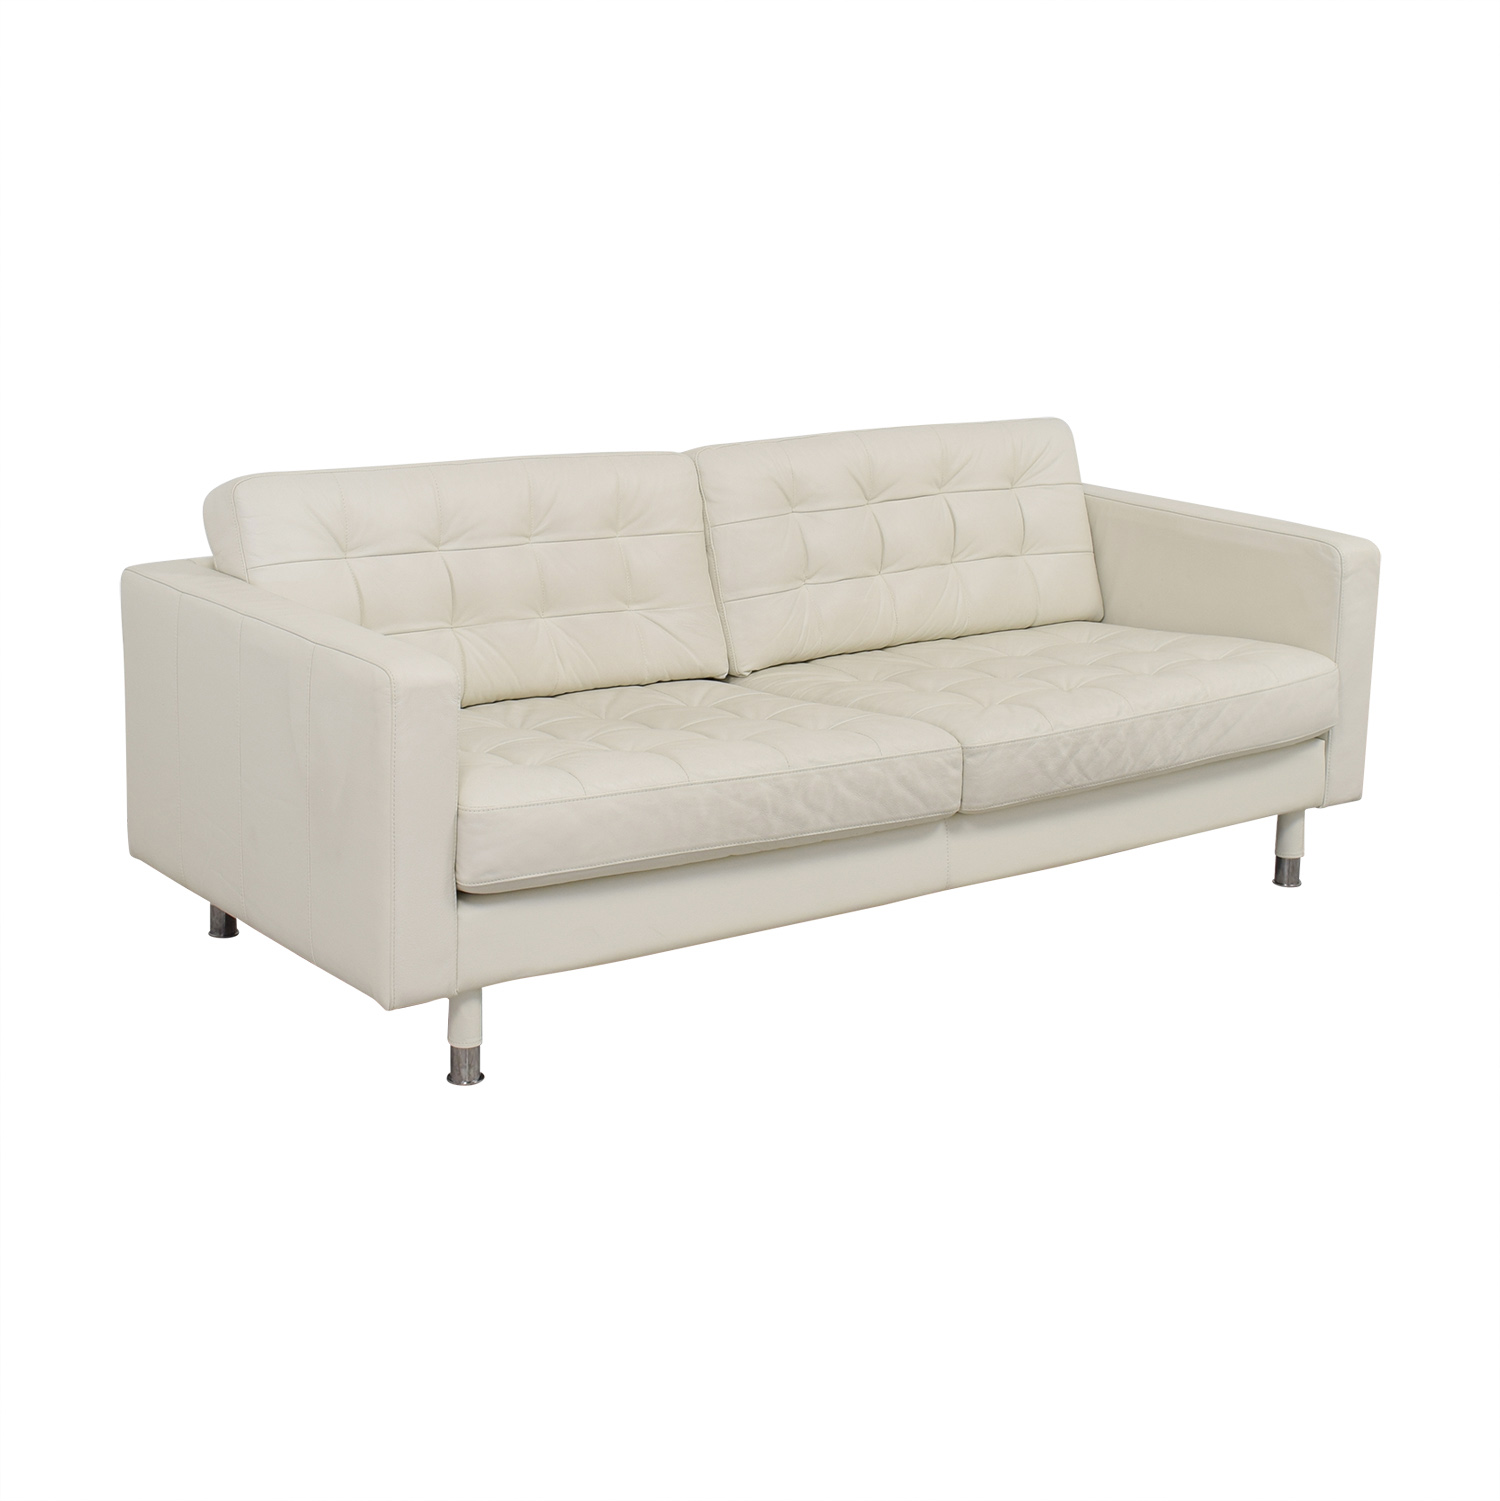 67 Off Ikea Ikea Tufted White Leather Couch Sofas